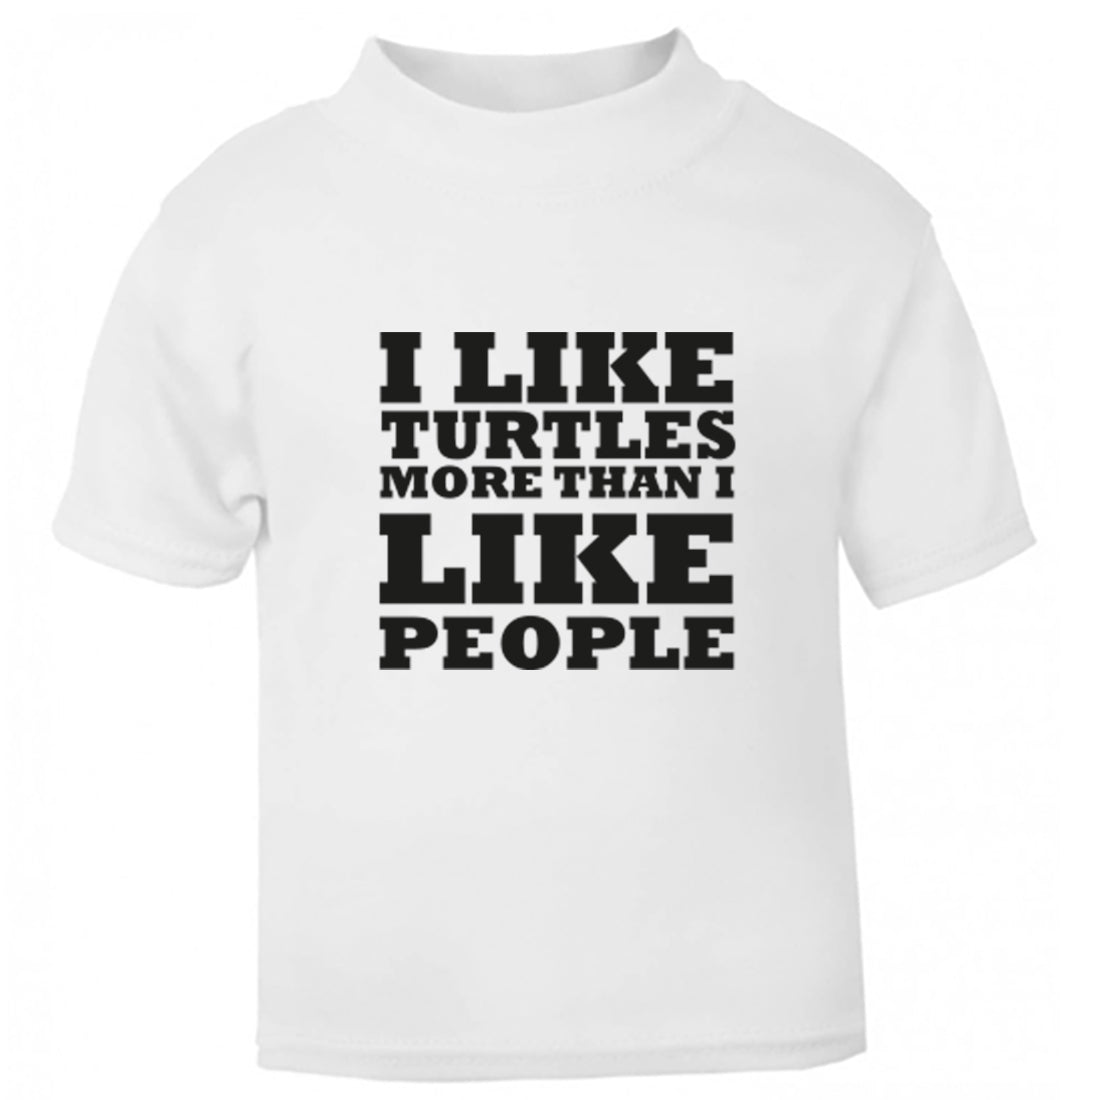 I Like Turtles More Than I Like People Childrens Ages 3/4-12/14 Unisex Fit T-Shirt K0650 - Illustrated Identity Ltd.